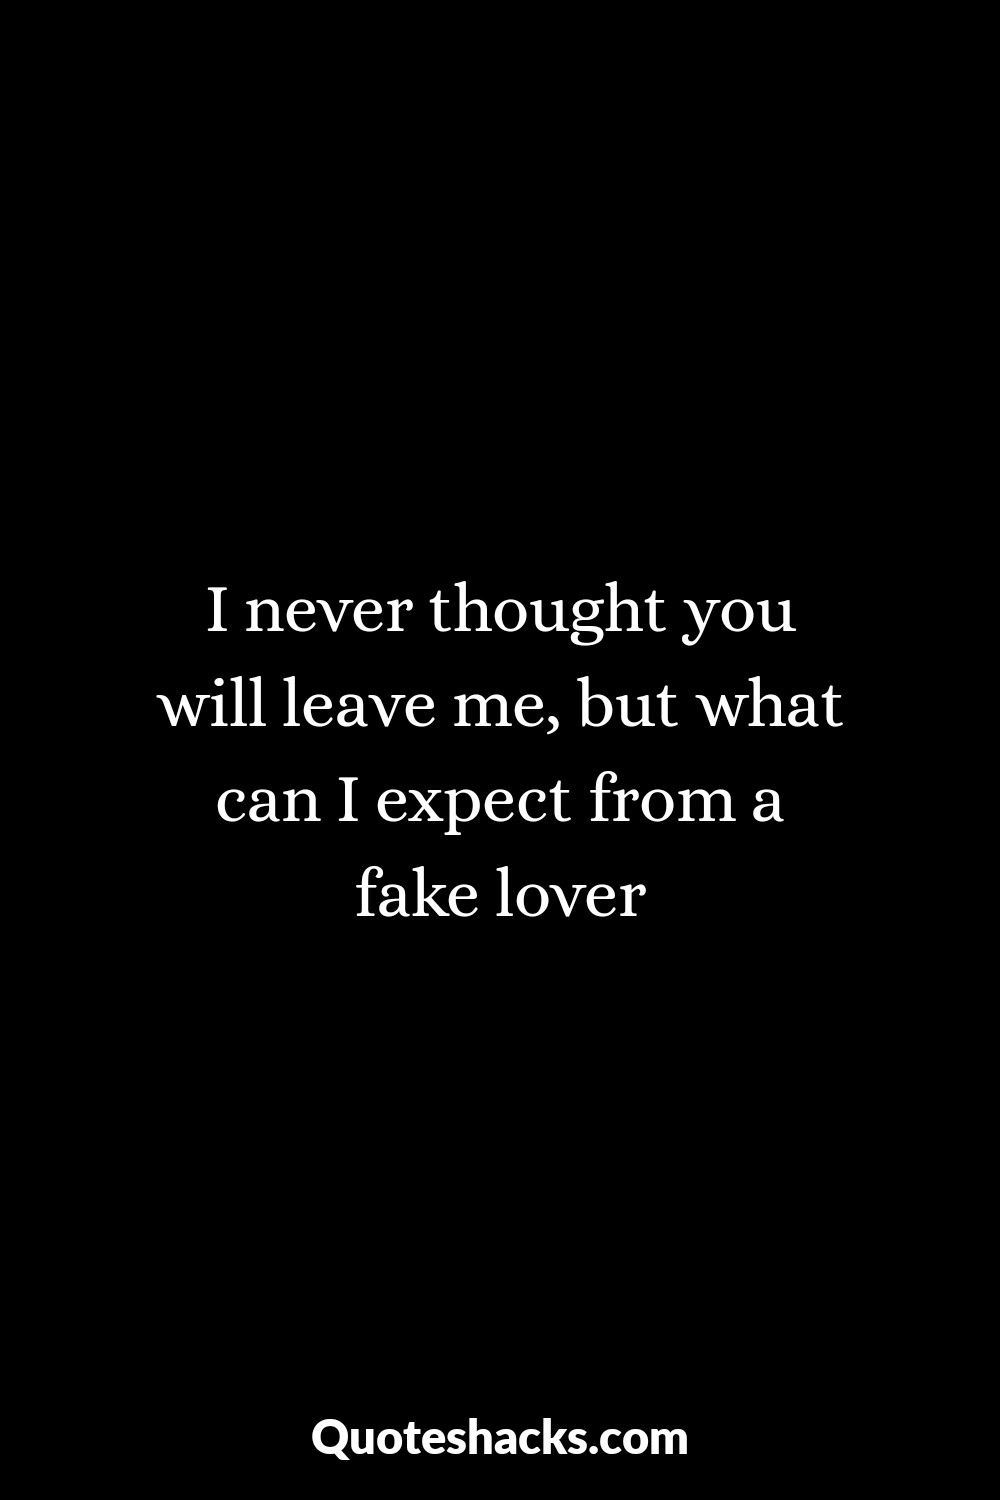 41 Fake Love And Relationship Quotes And Sayings Fake Love Quotes Fake Relationship Quotes Fake Quotes